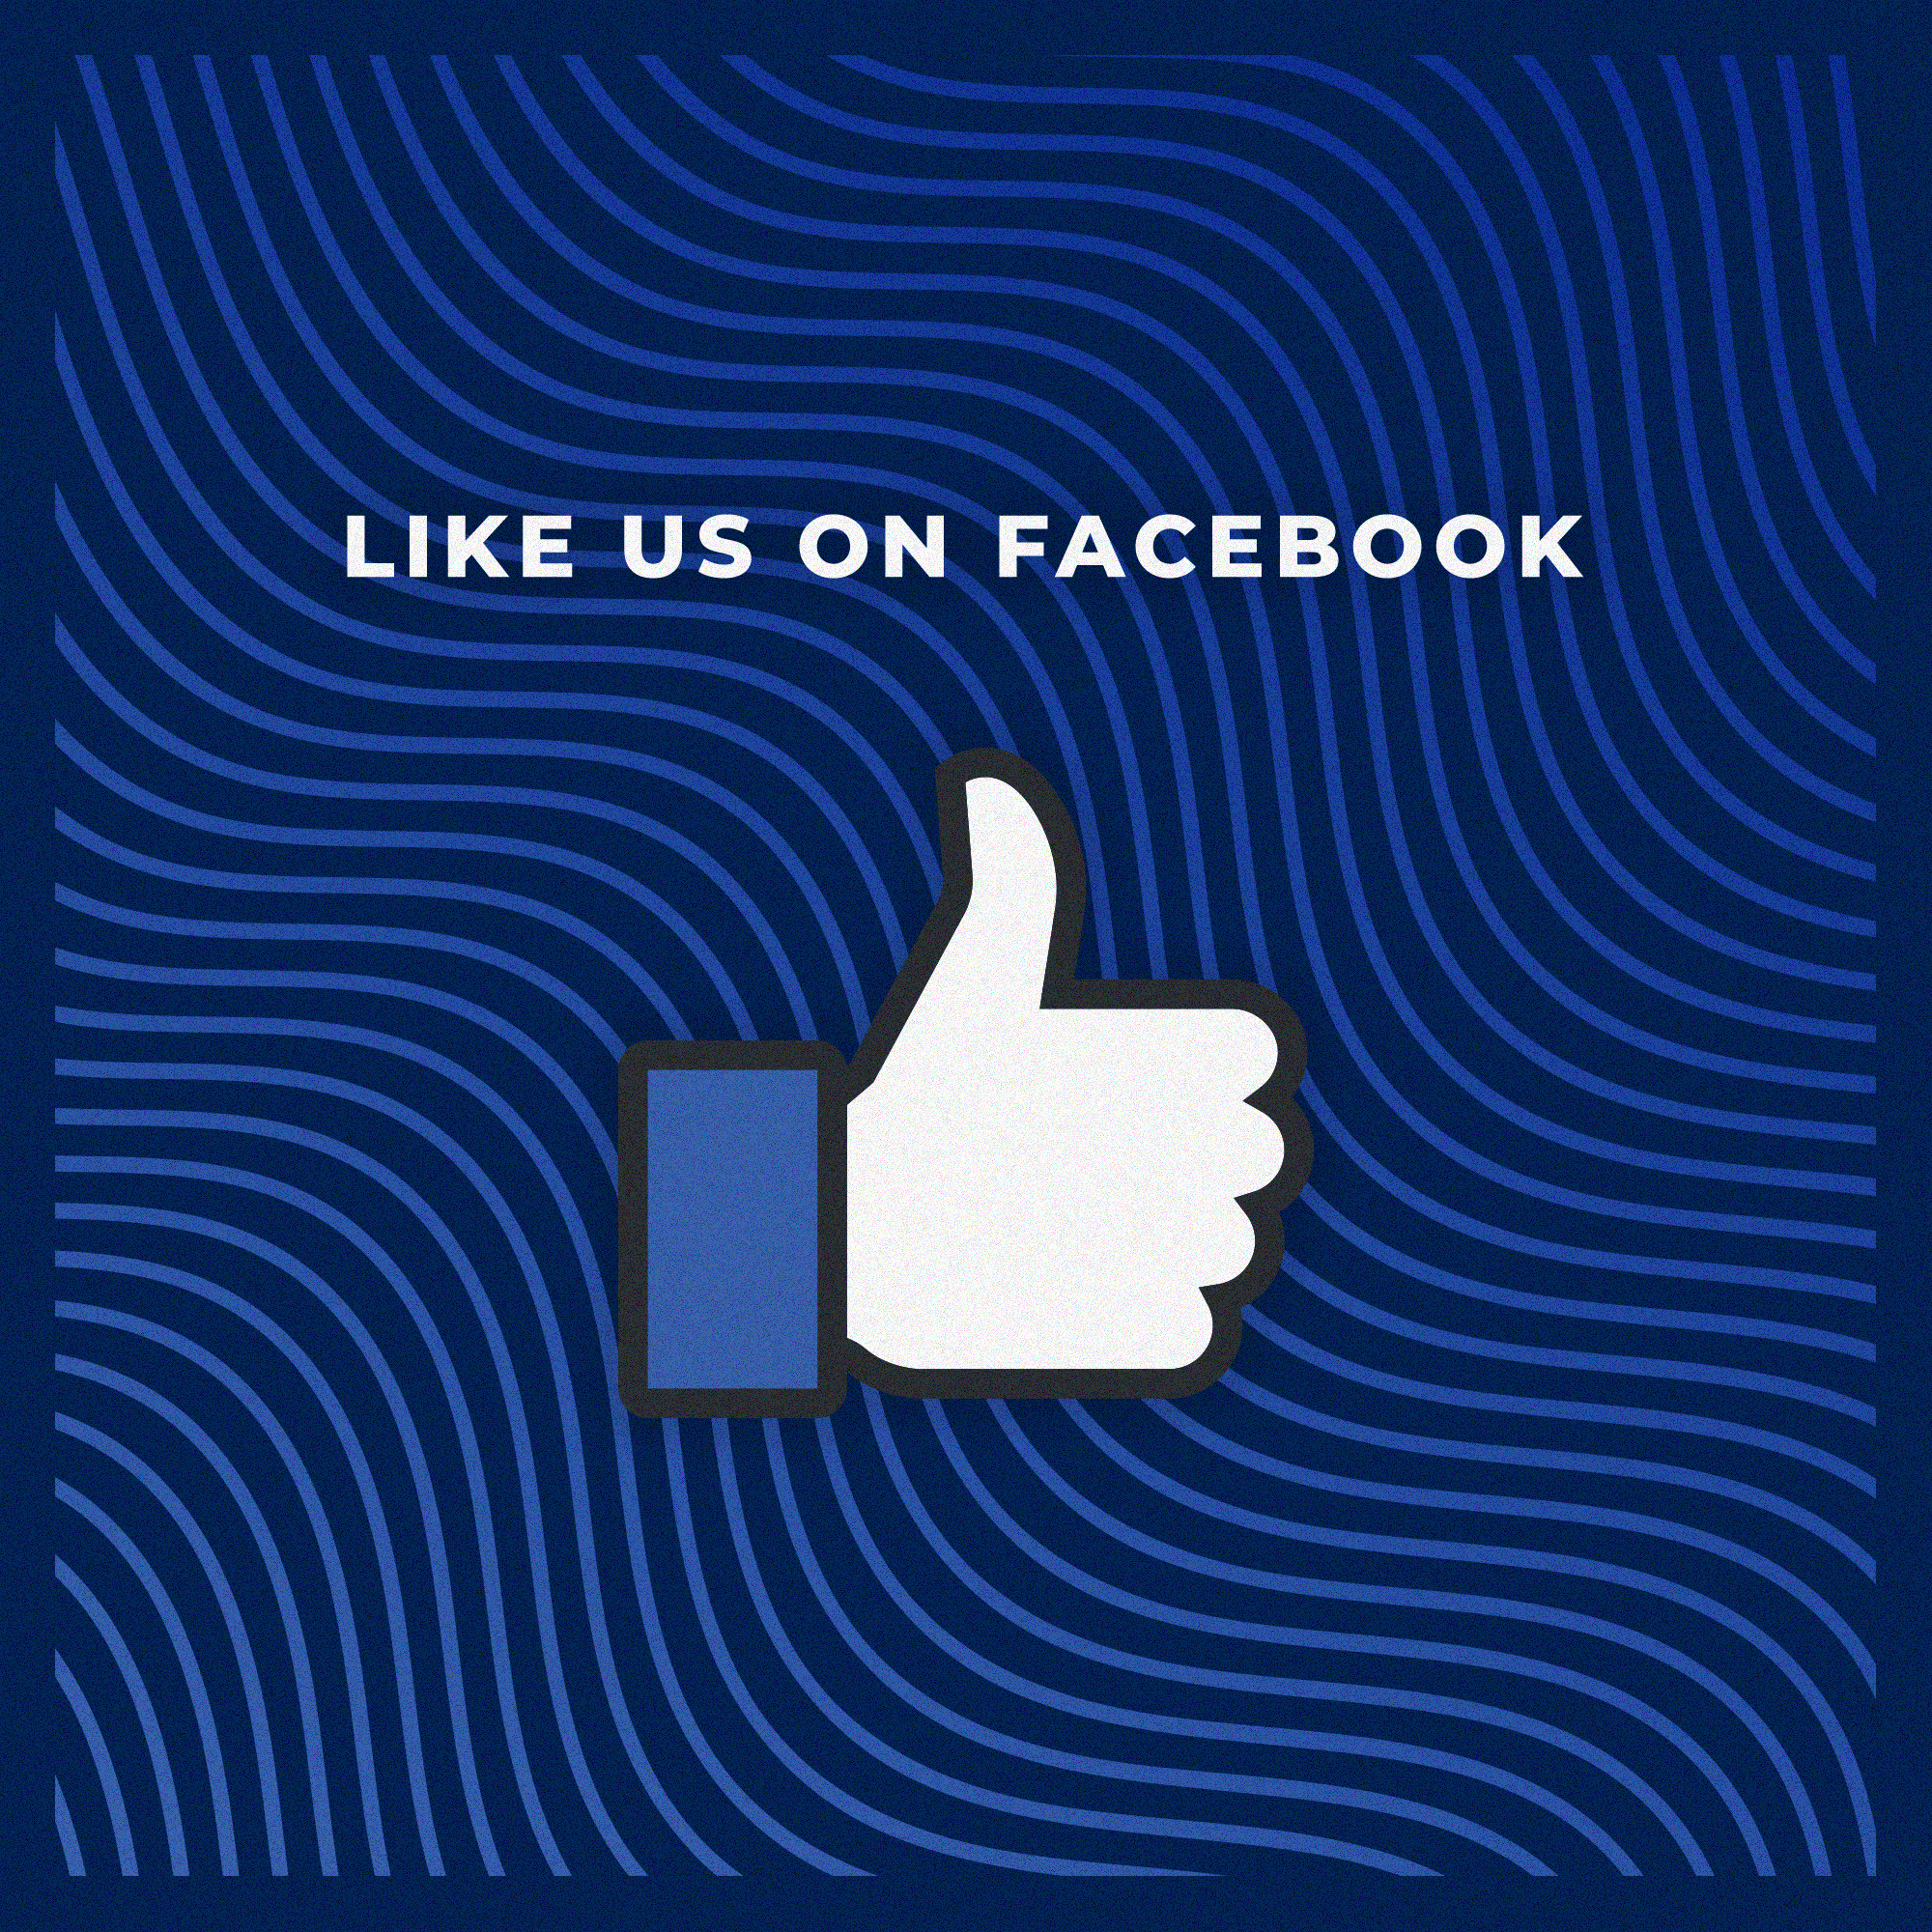 Wavy Lines Like Our Facebook Page - Title